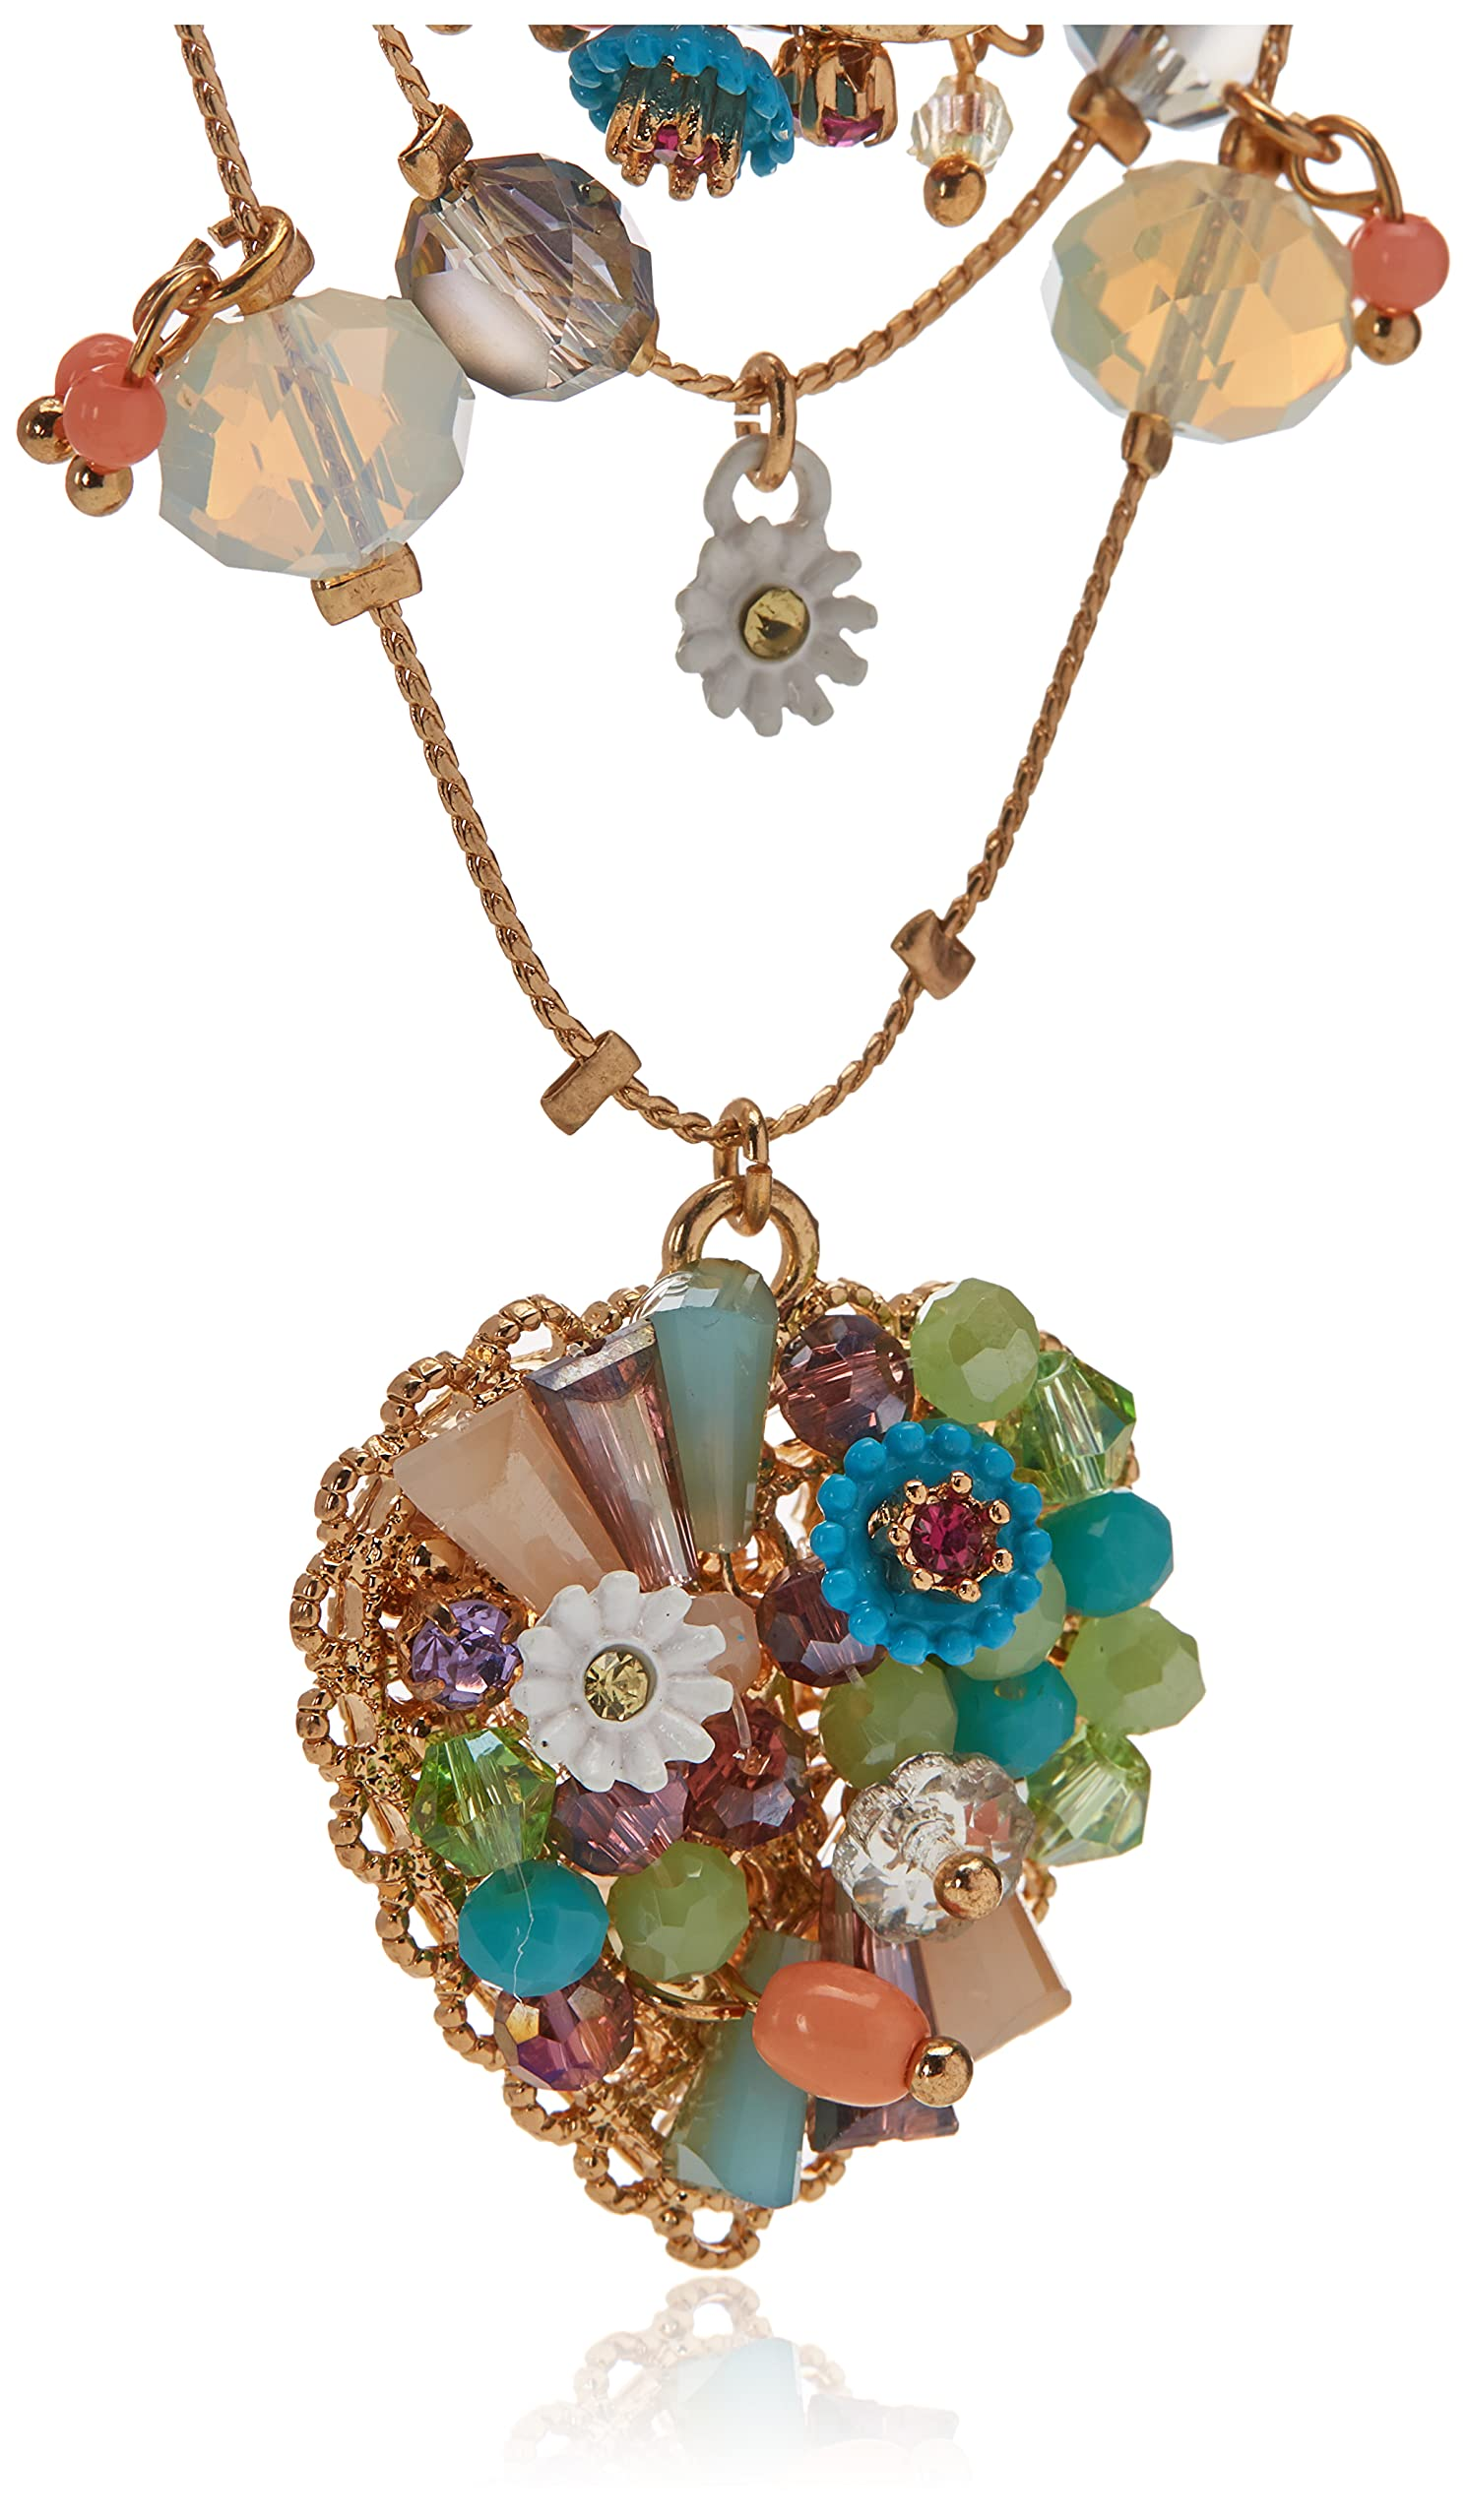 Betsey Johnson Woven Mixed Multi-Colored Bead Flower Heart Illusion Necklace